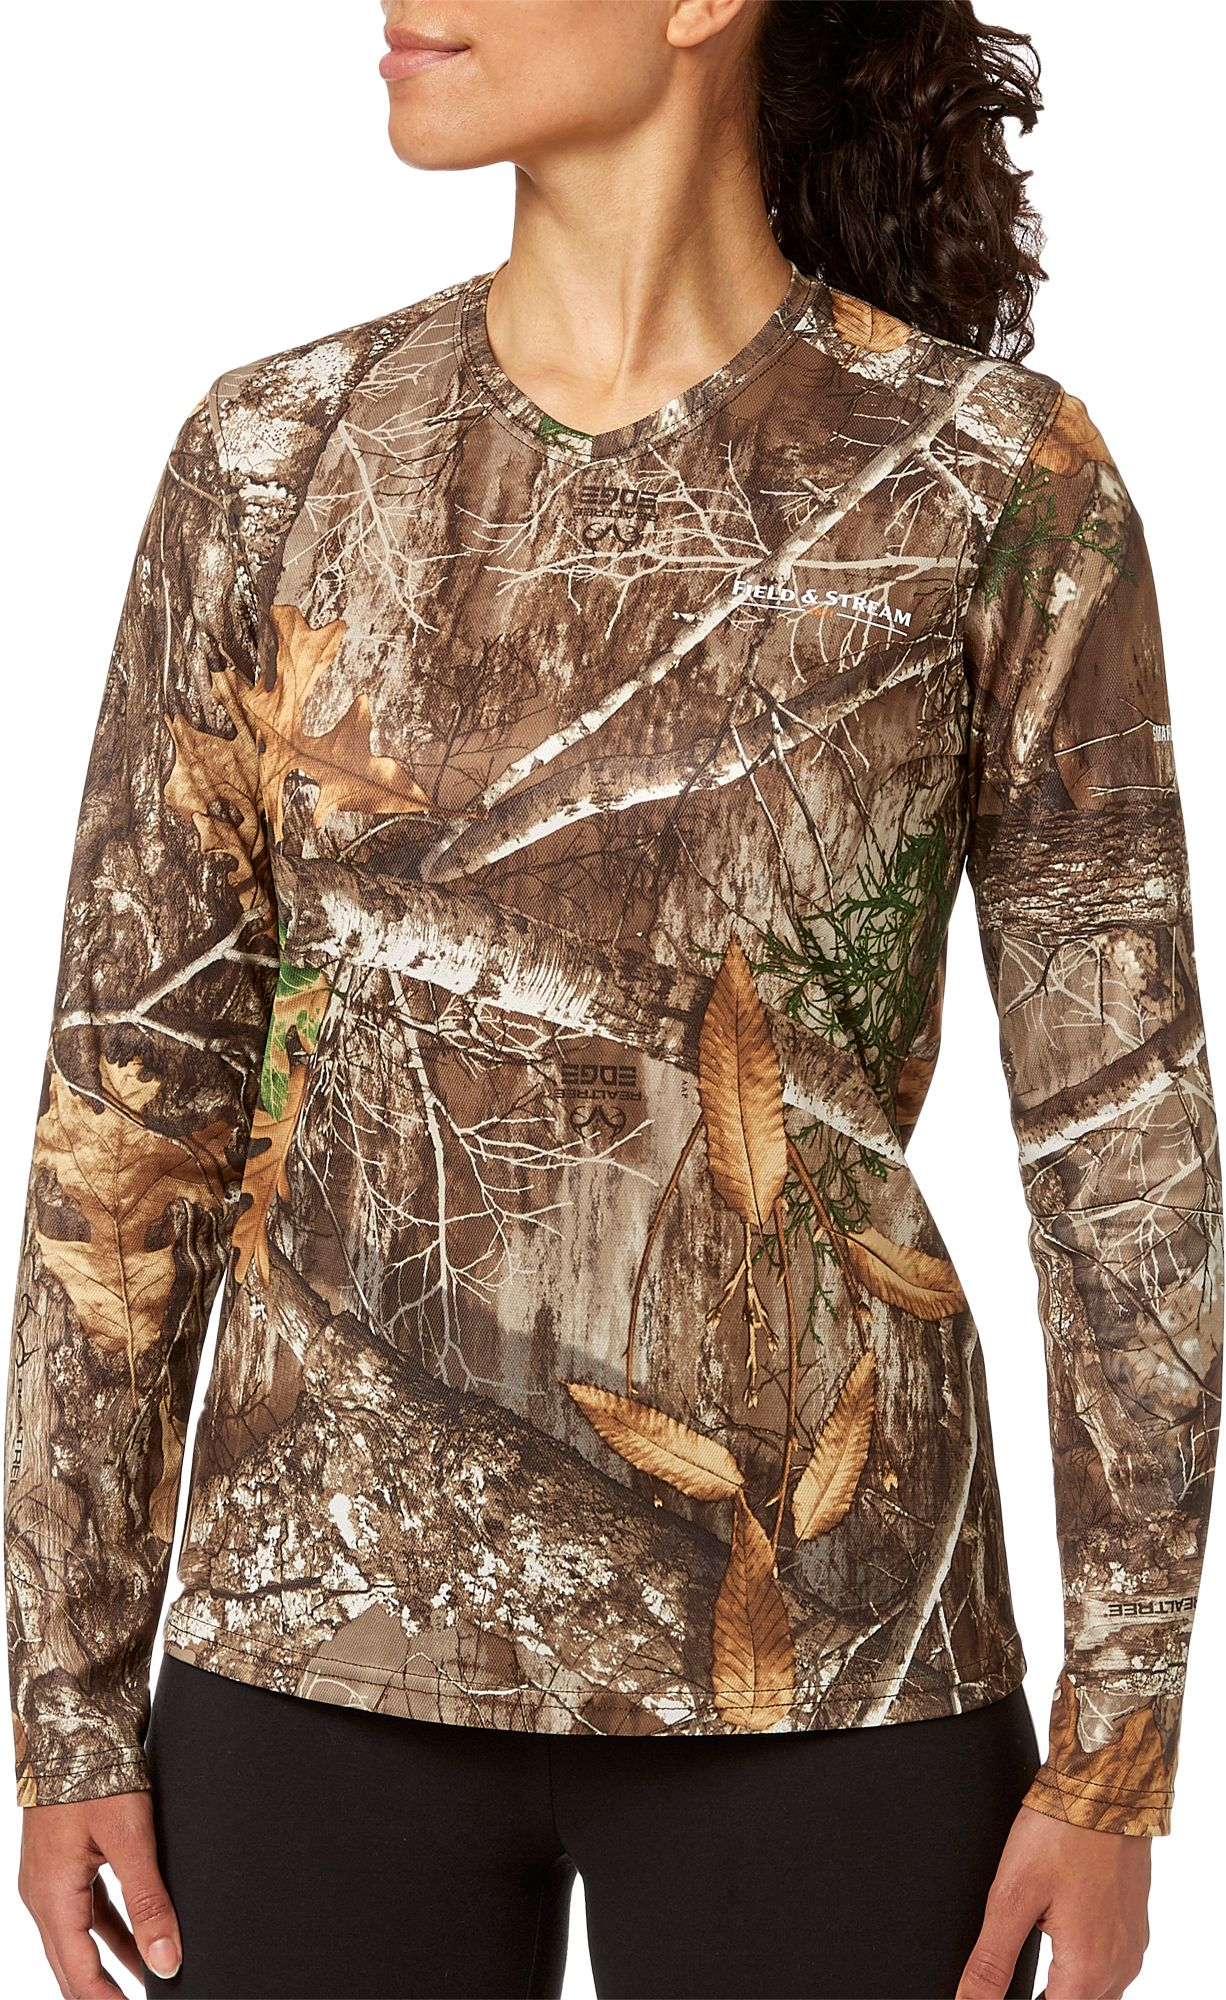 Field & Stream Women's Long Sleeve Camo Tech Tee, Size: Small, Multi thumbnail